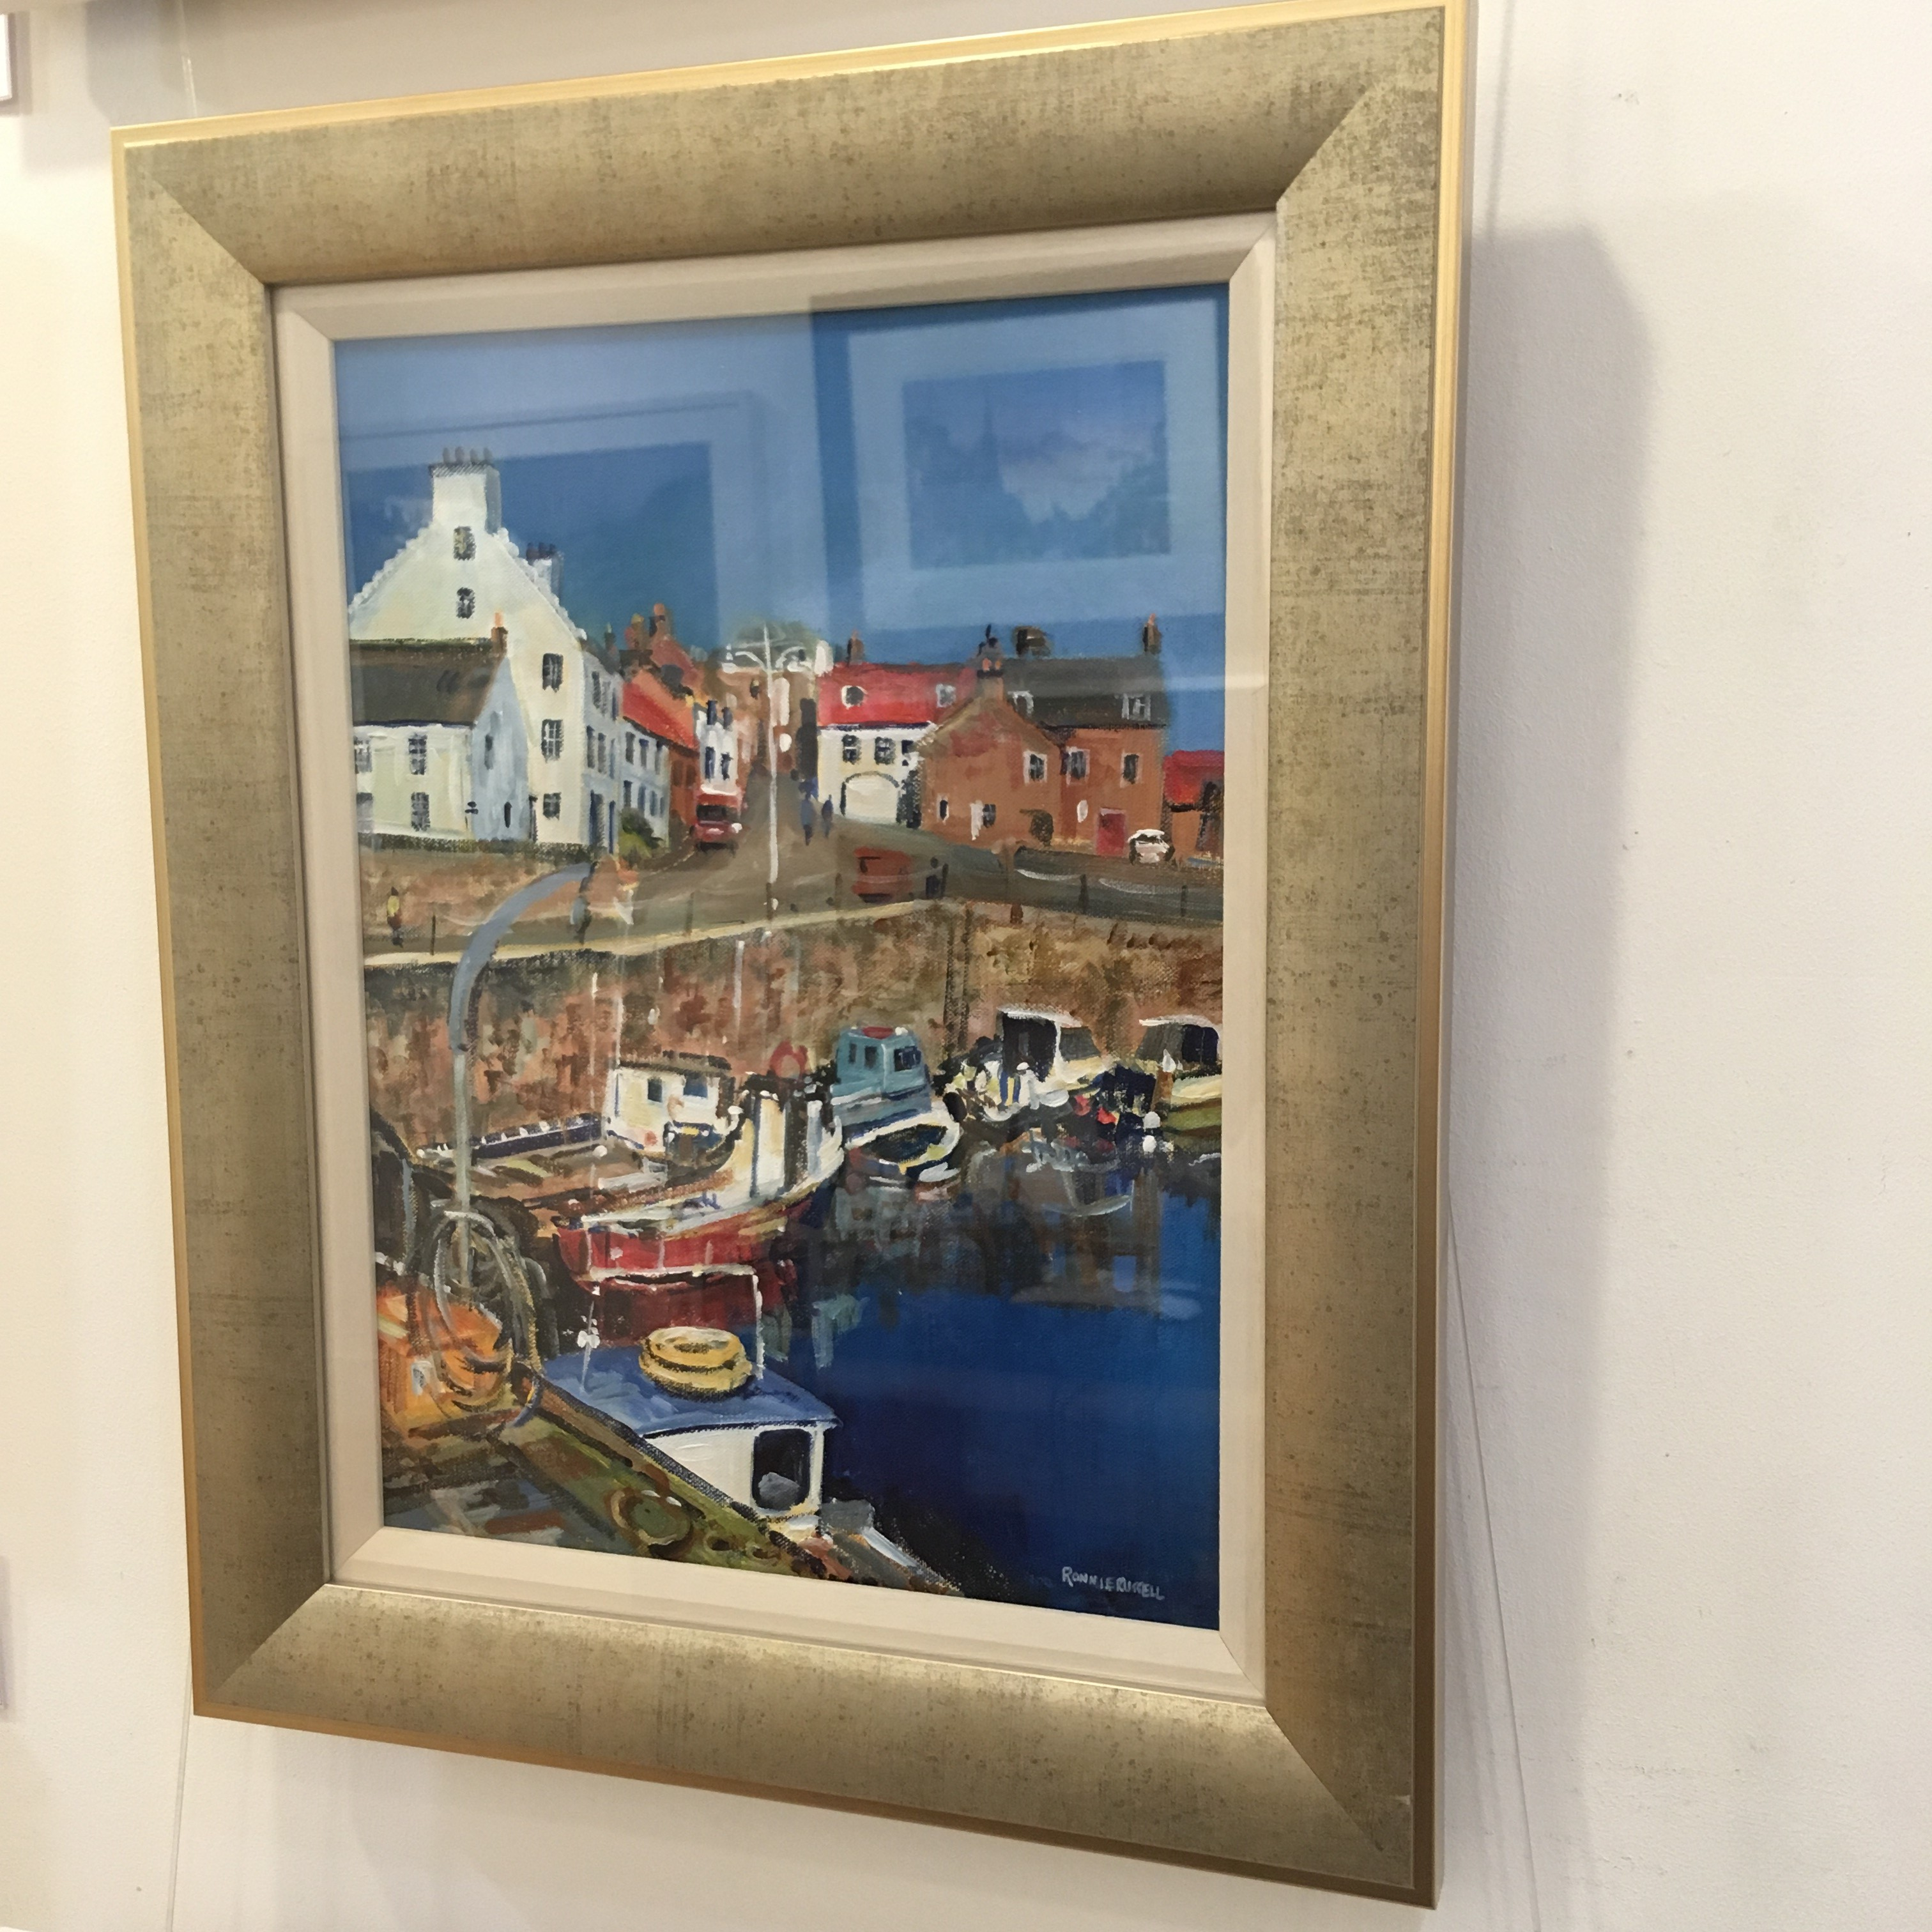 'Summer Sun, Crail' by artist Ronnie Russell